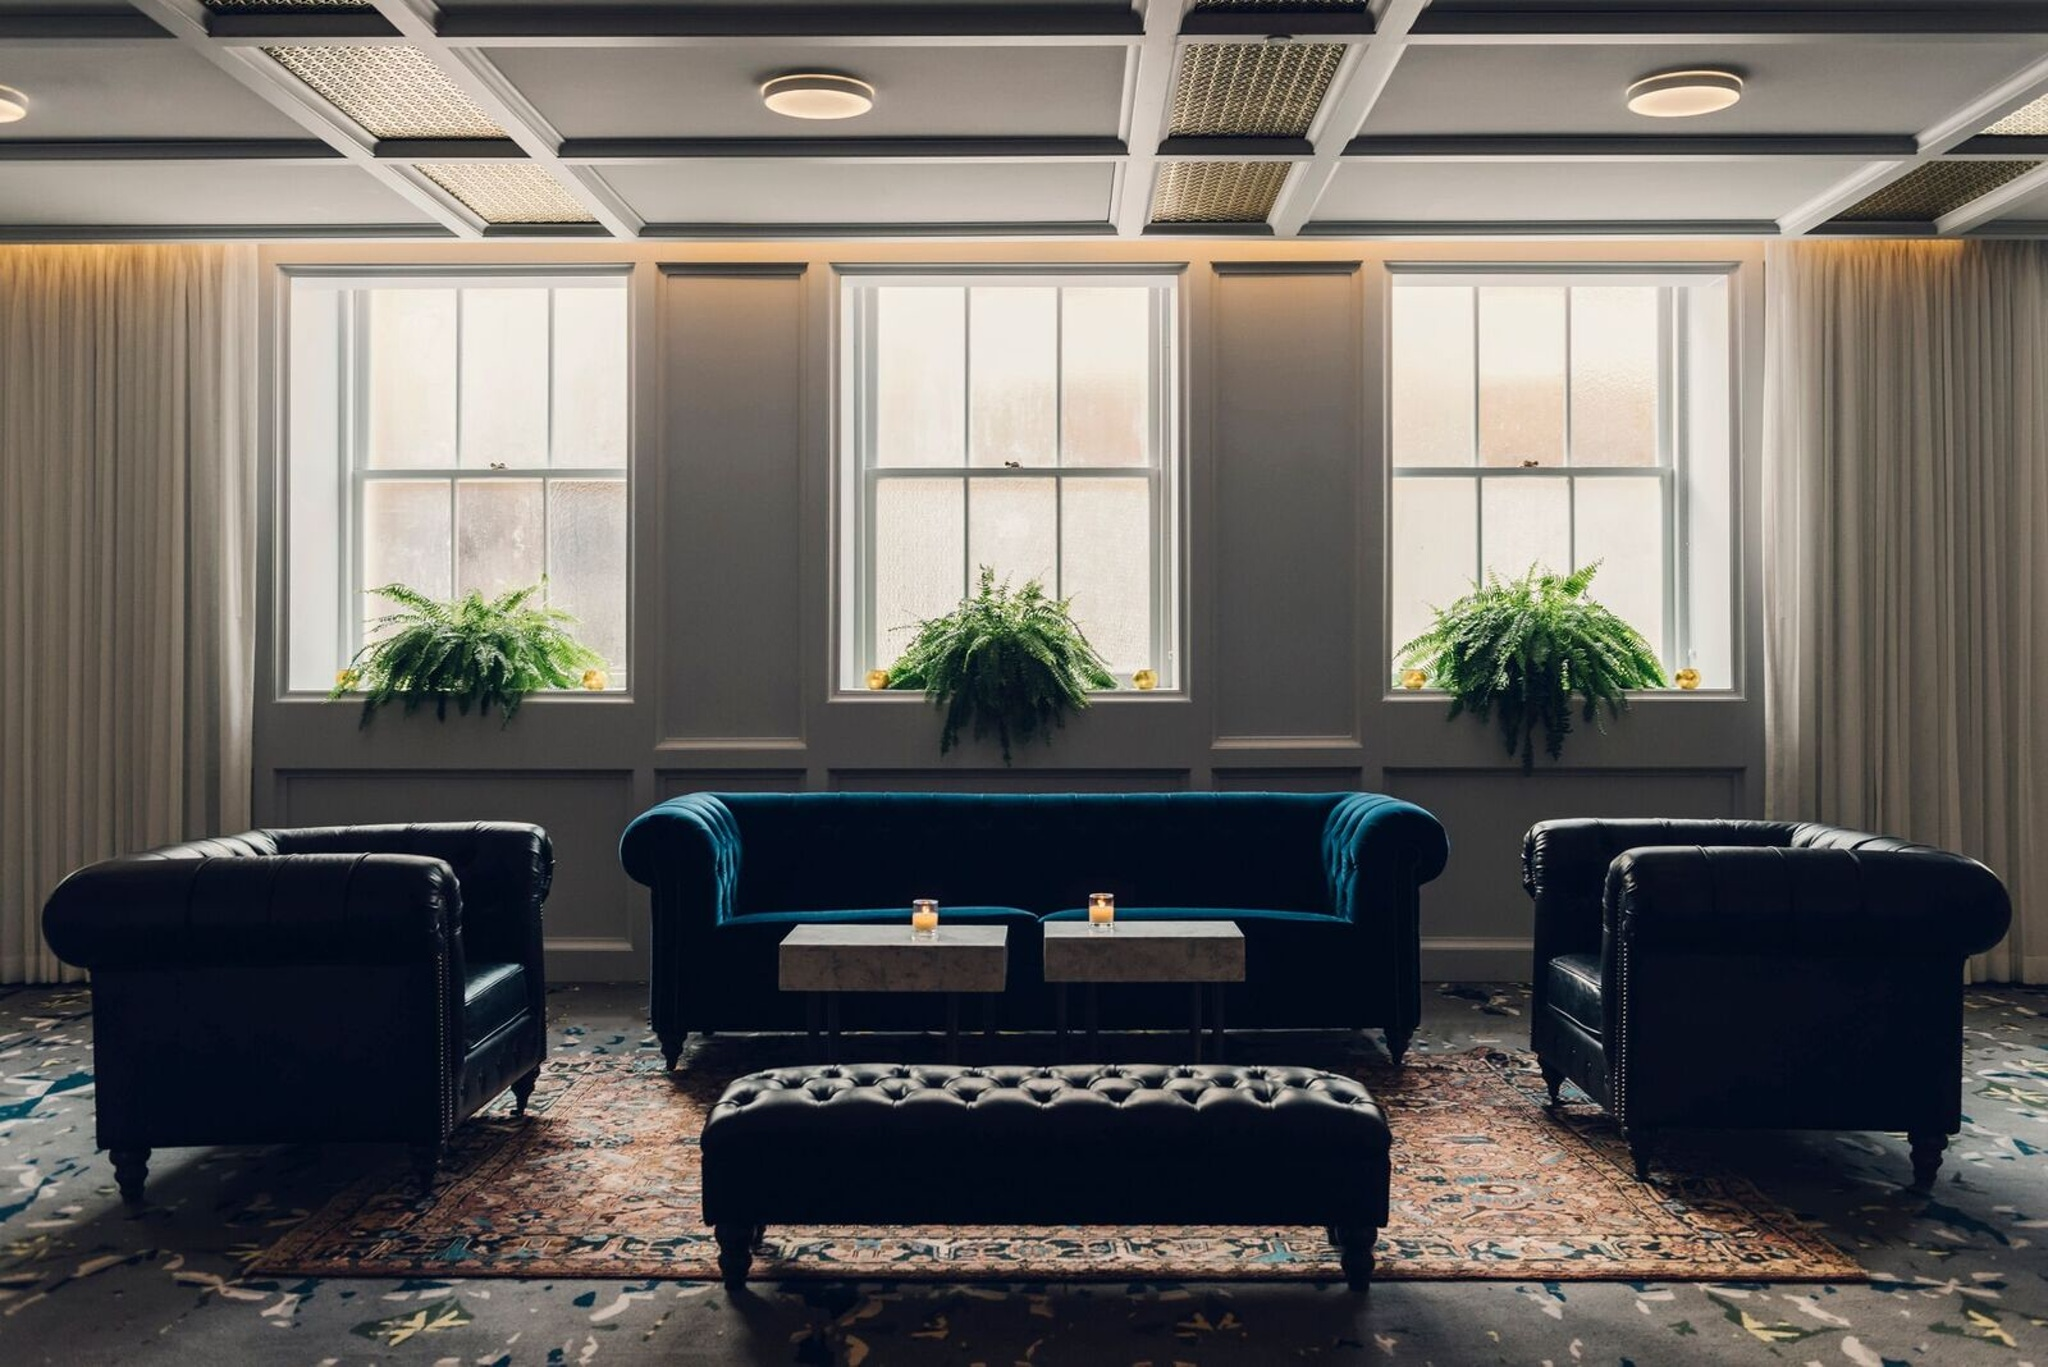 modern chic navy velvet seating area at the line hotel in washington d.c.